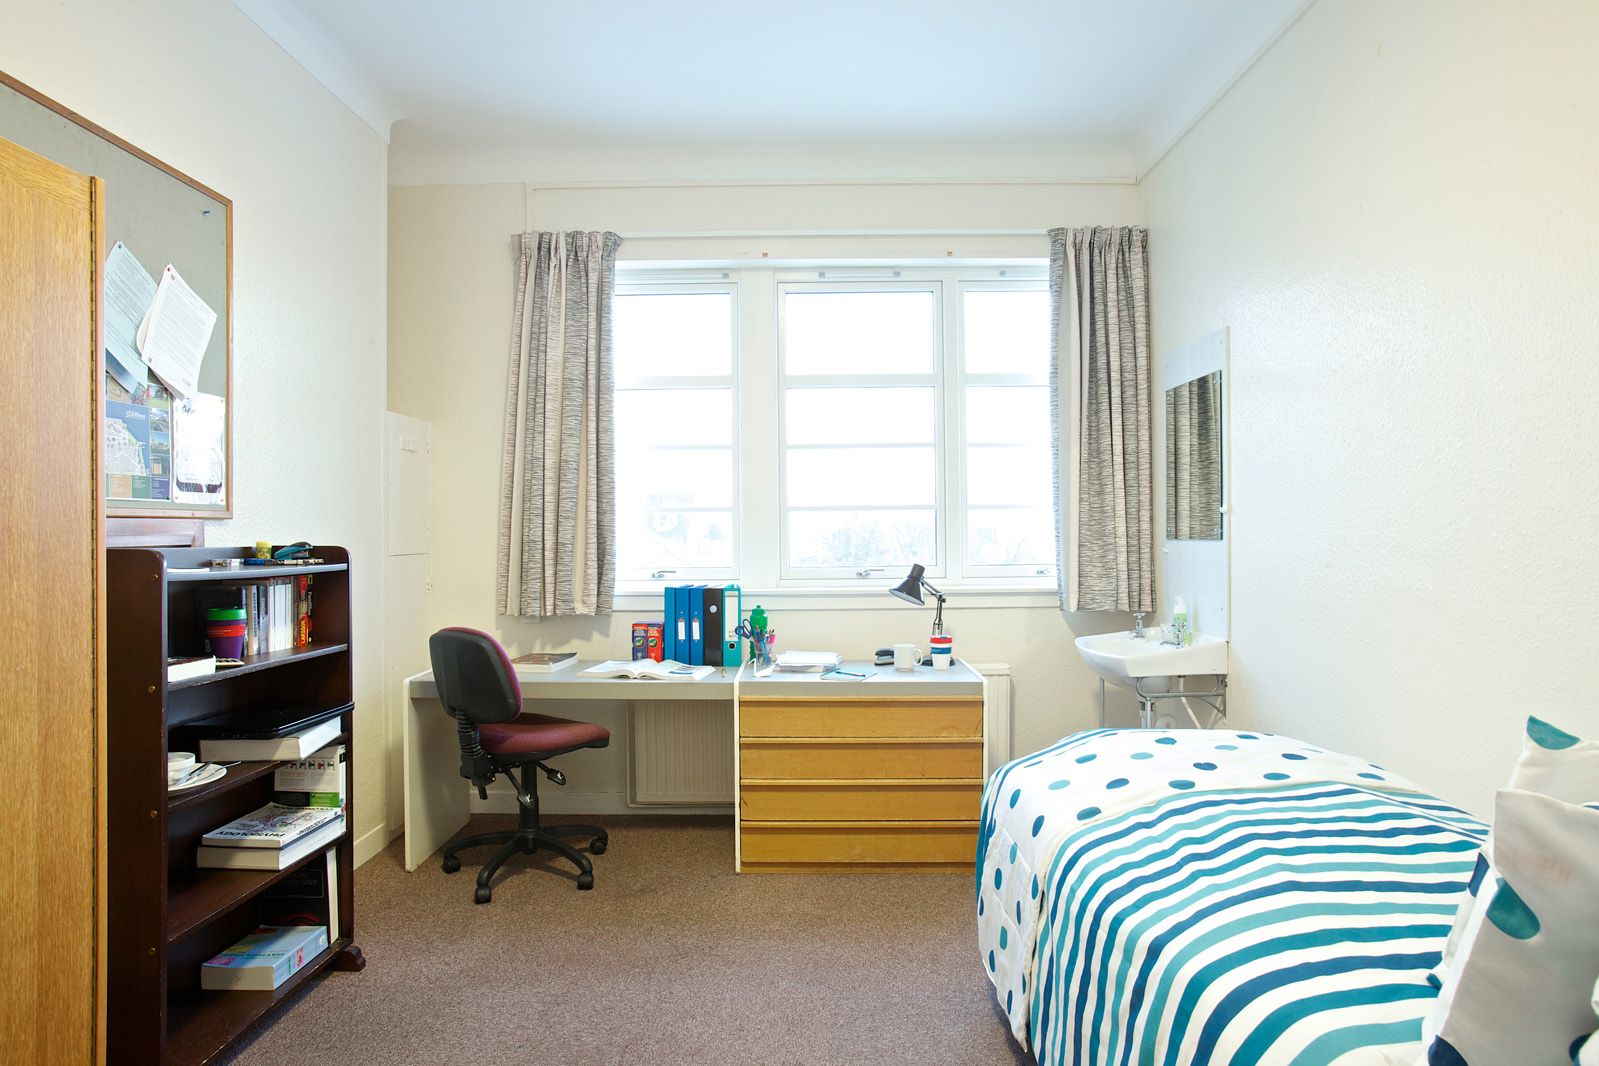 Image Result For Where Can I Find Rooms For Rent In My Area